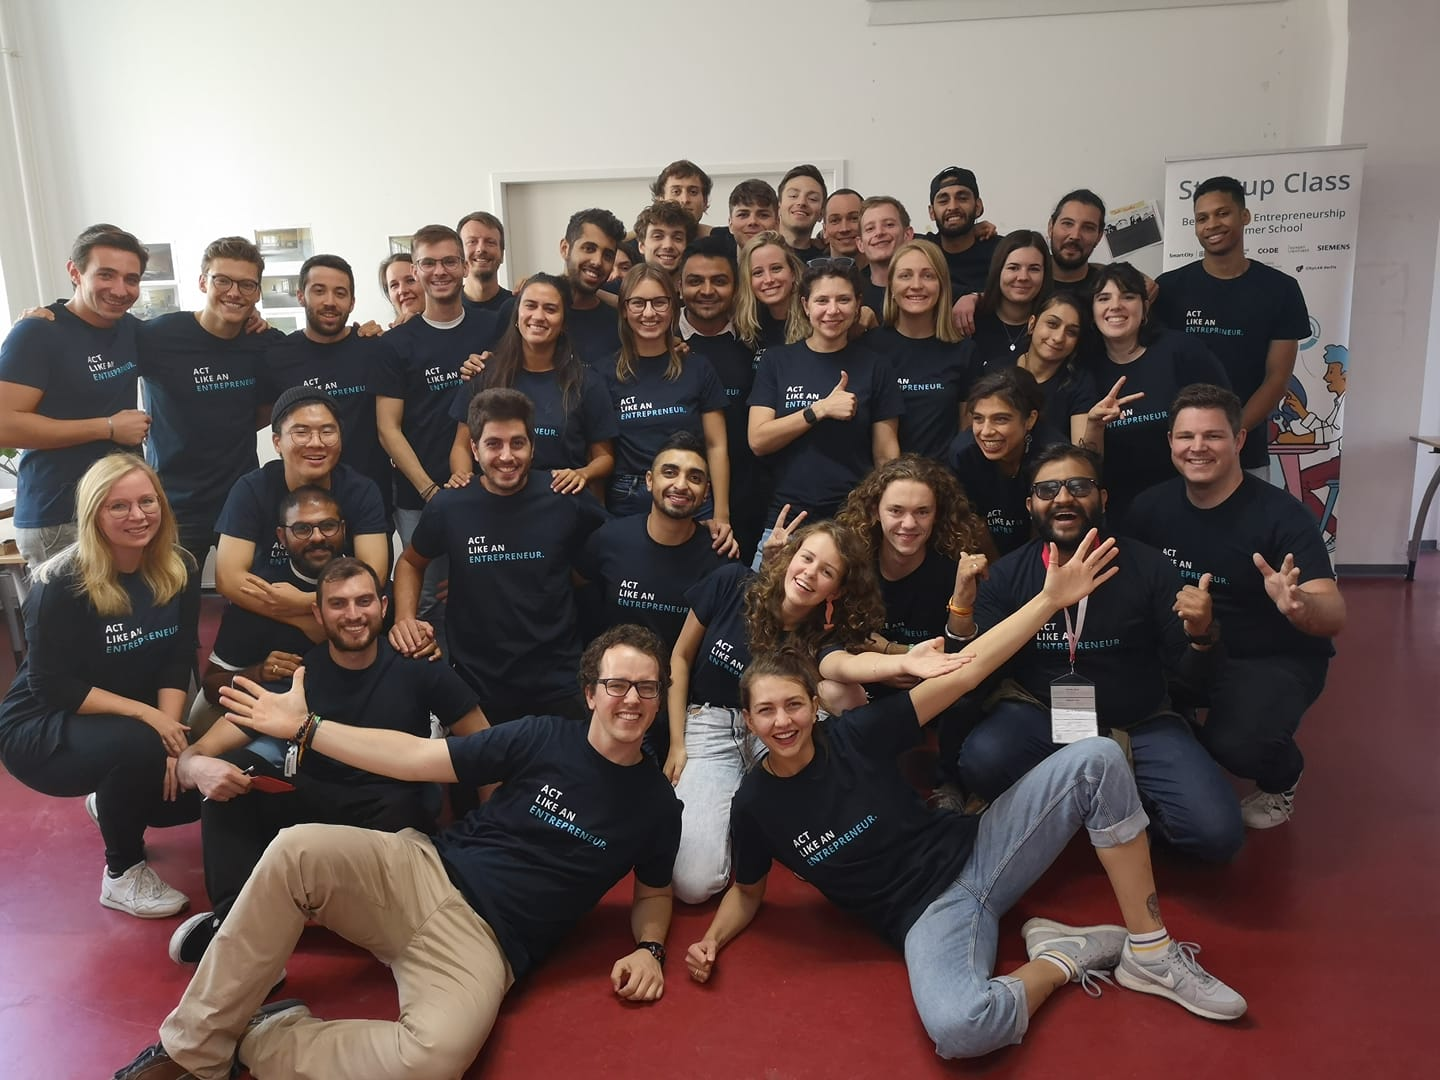 This was Startup Class 2019